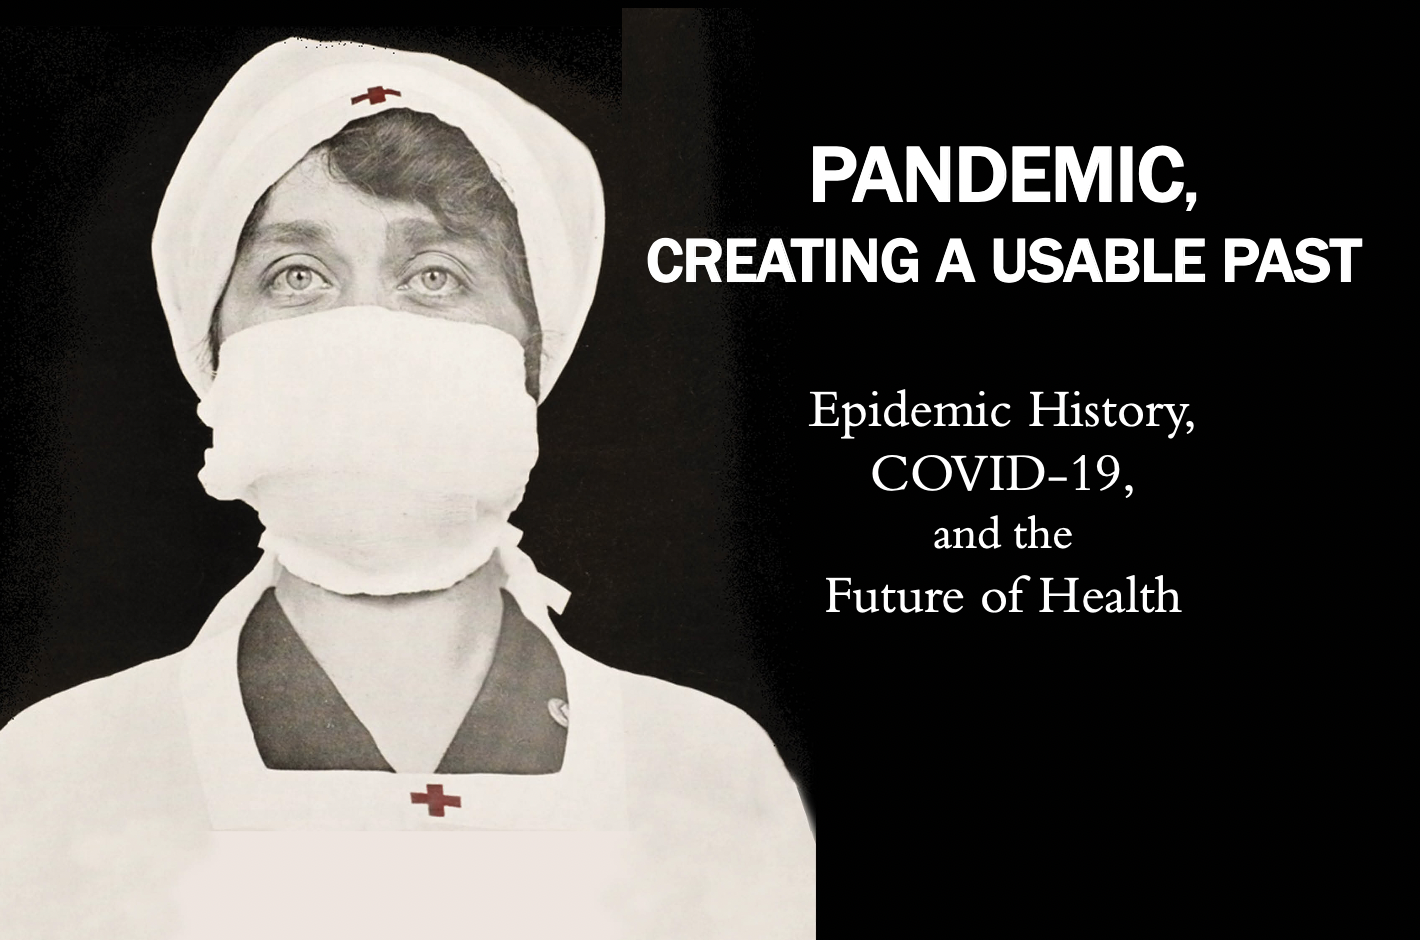 Pandemic, Creating a Usable Past: Epidemics, COVID-19, and the Future of Health